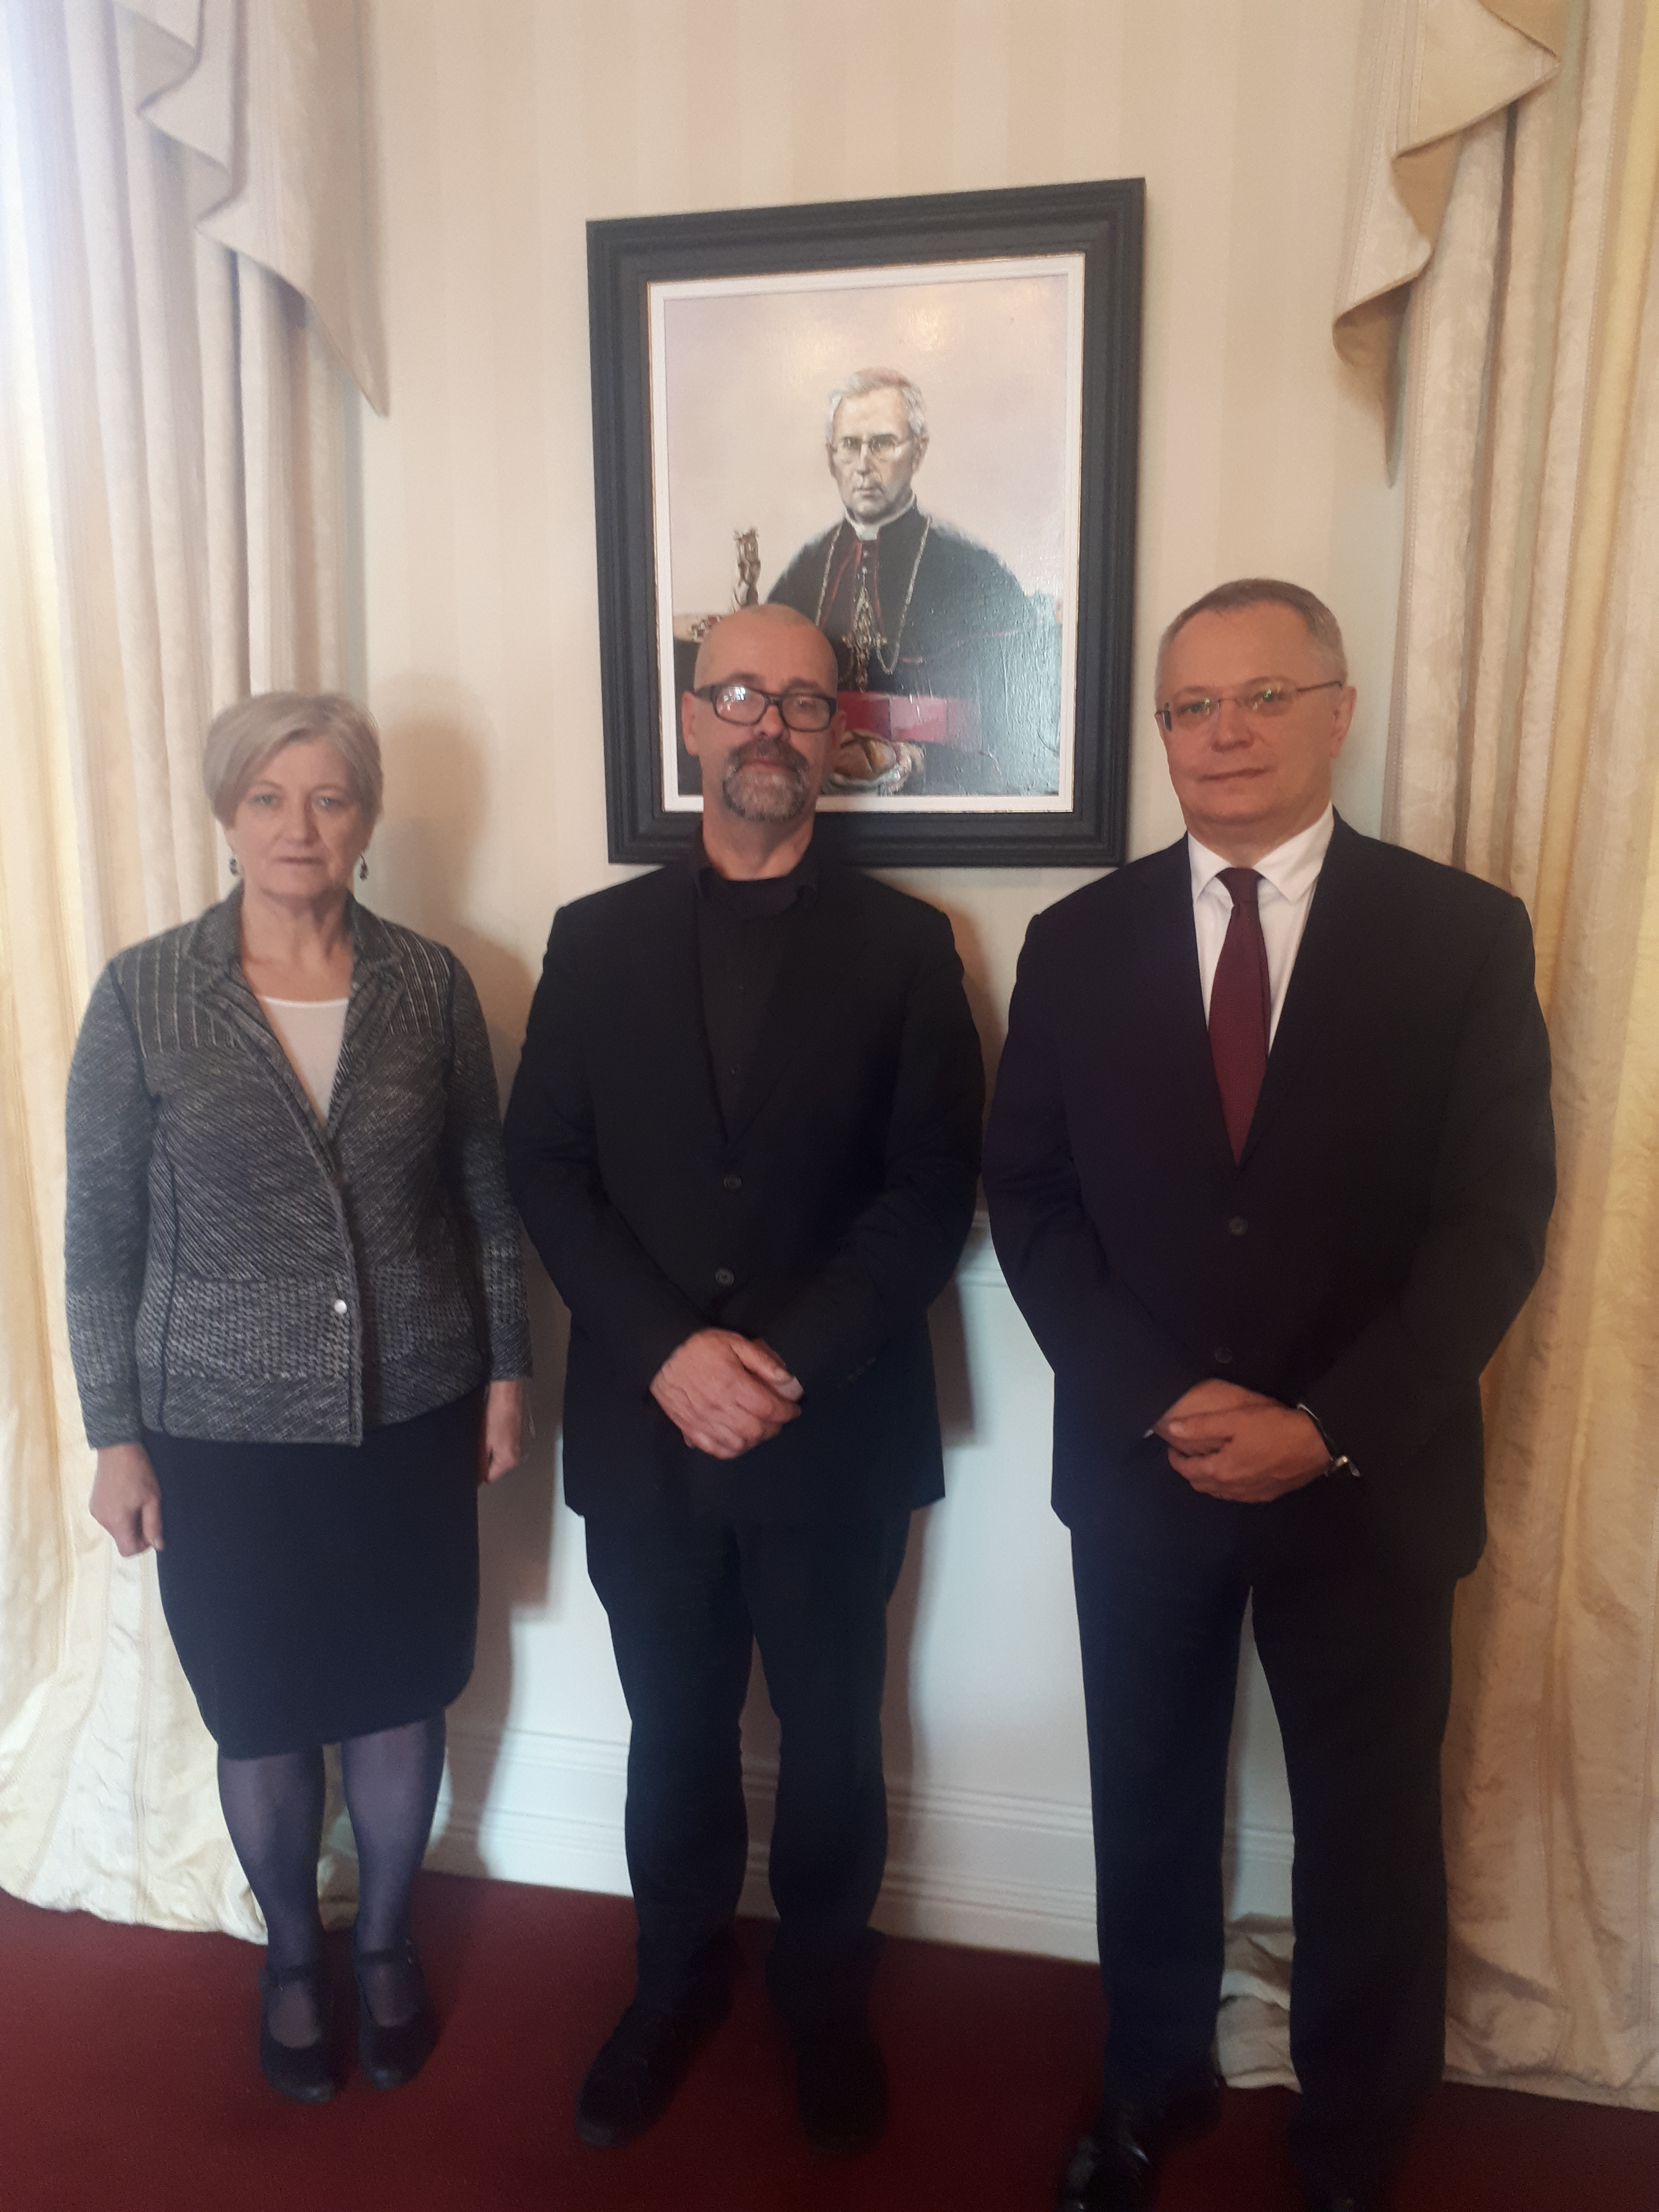 Tom Byrne with the Lithuanian Ambassador and his wife with Tom's Portrait of Pranciškus Ramanauskas